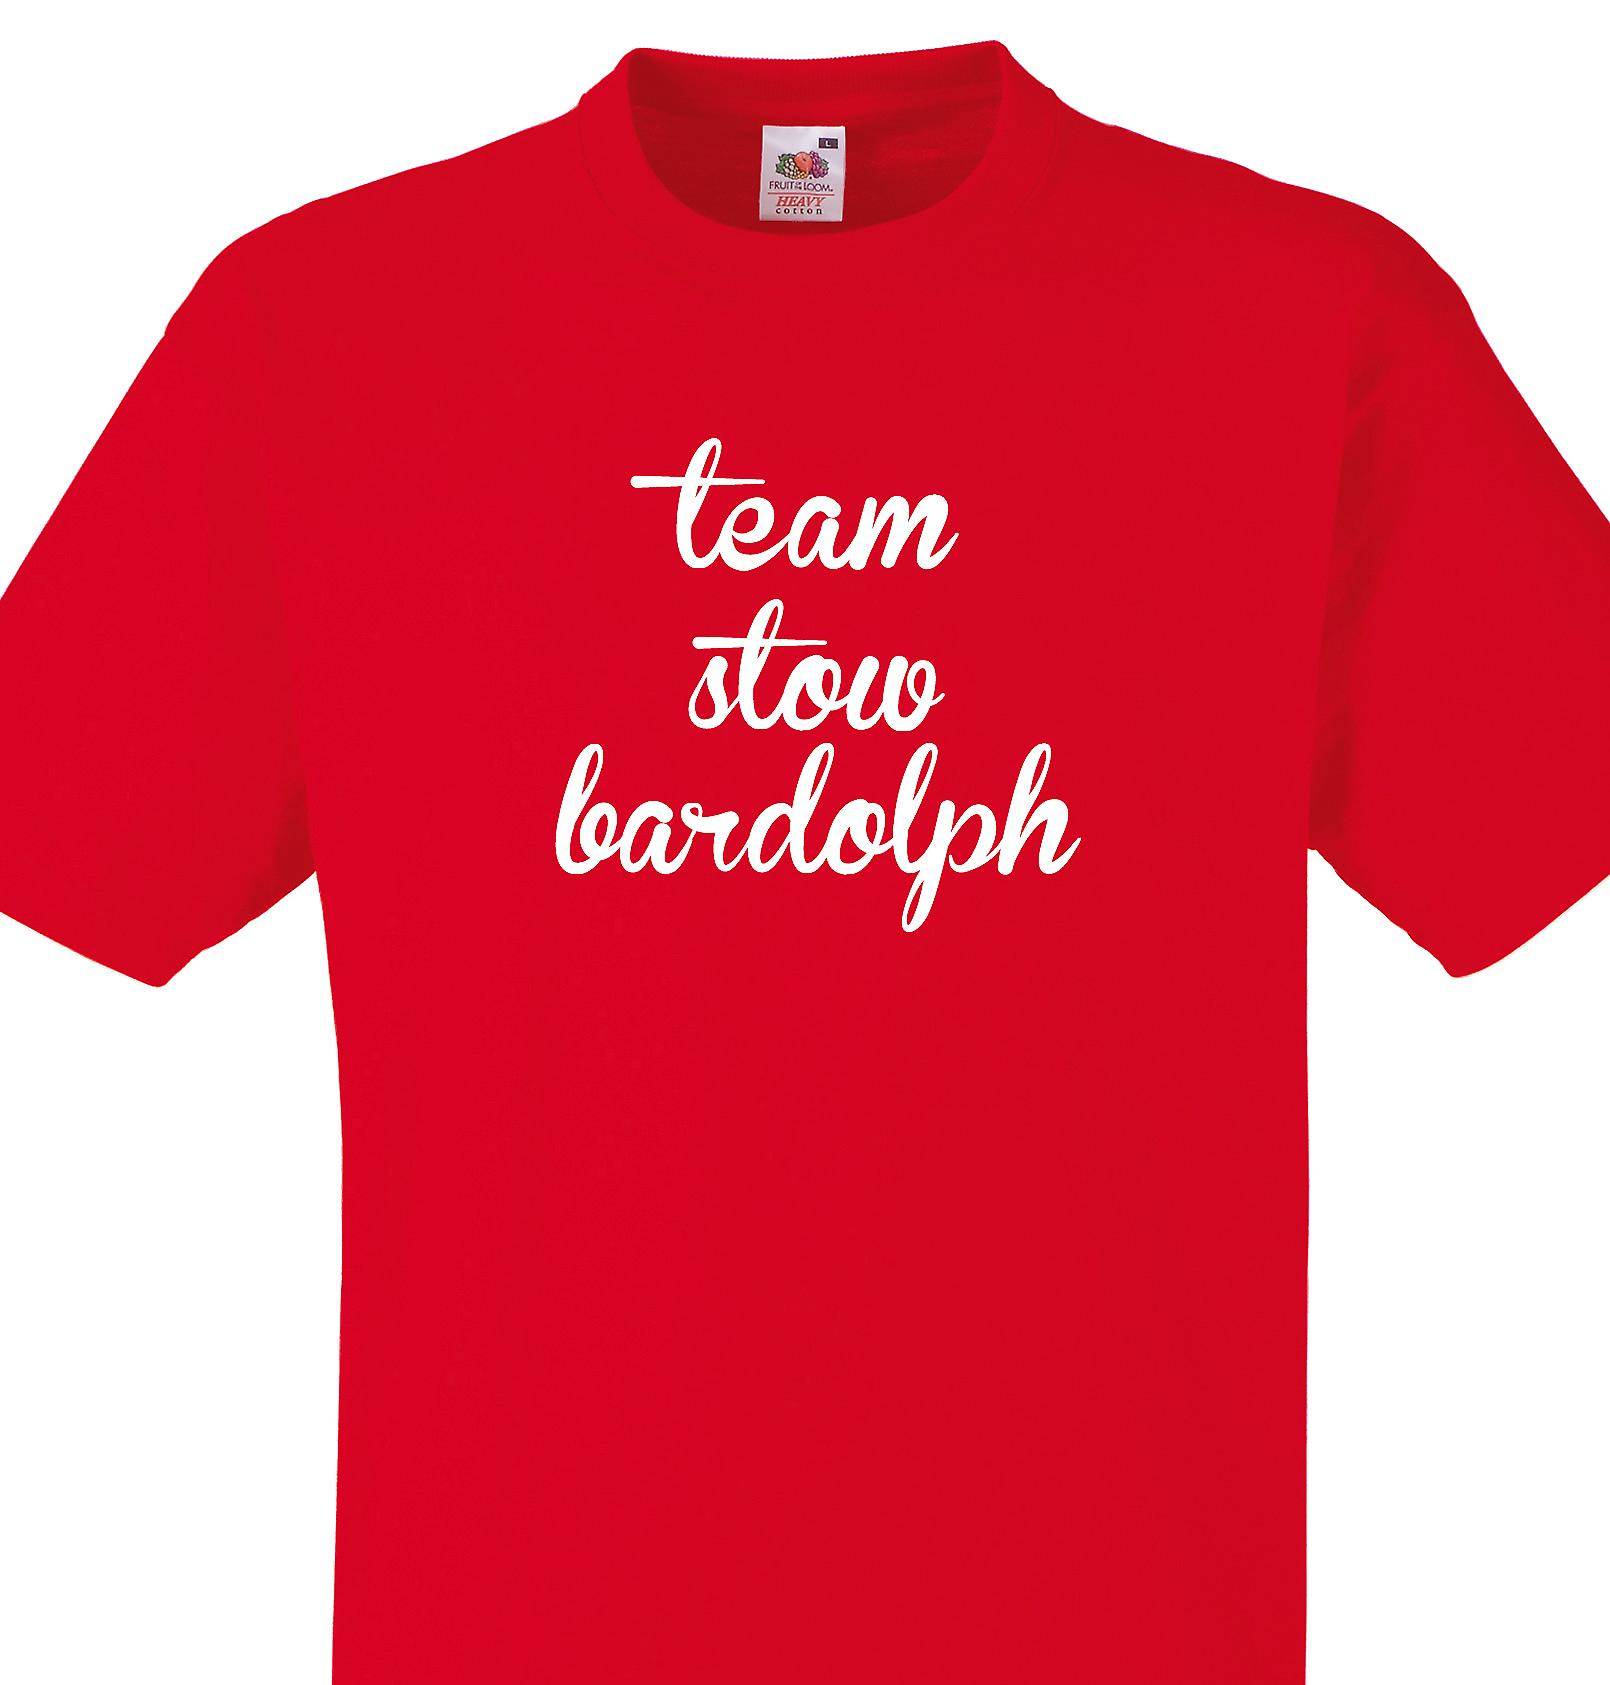 Team Stow bardolph Red T shirt